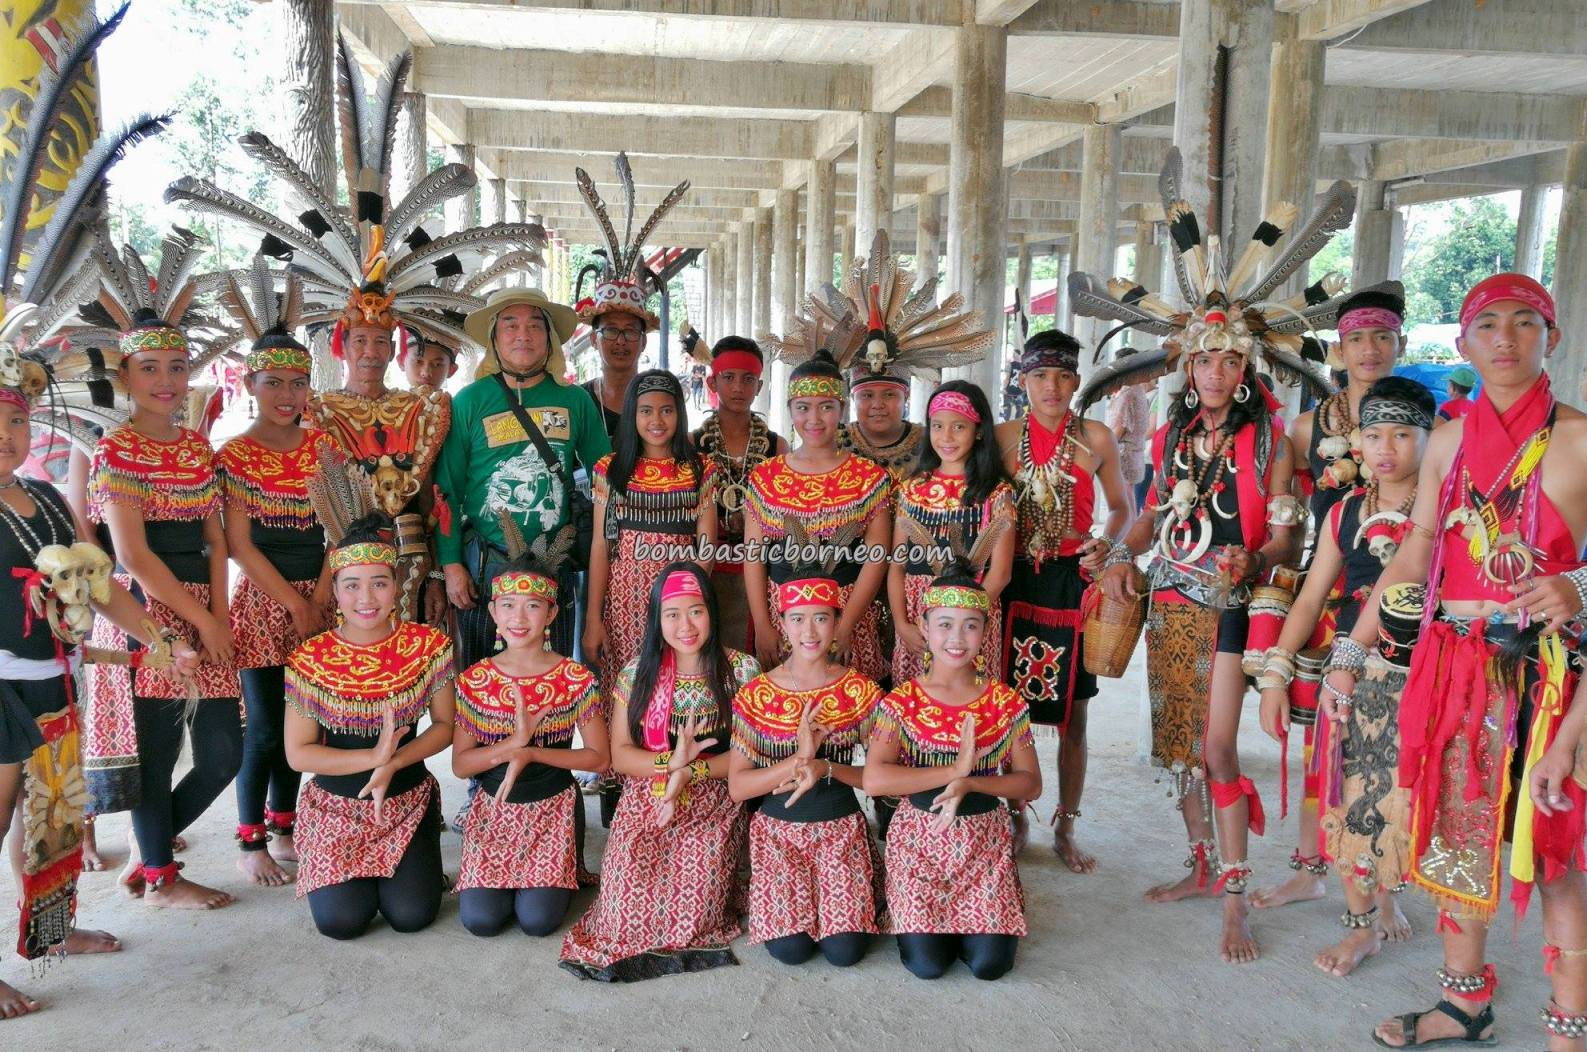 Rumah Betang Raya Dori Mpulor, Kota Sanggau, paddy harvest festival, indigenous, traditional, culture, Indonesia, native, tribal, Obyek wisata, Tourism, travel guide, trans border, 穿越婆罗洲游踪, 印尼西加里曼丹, 原住民传统丰收节,